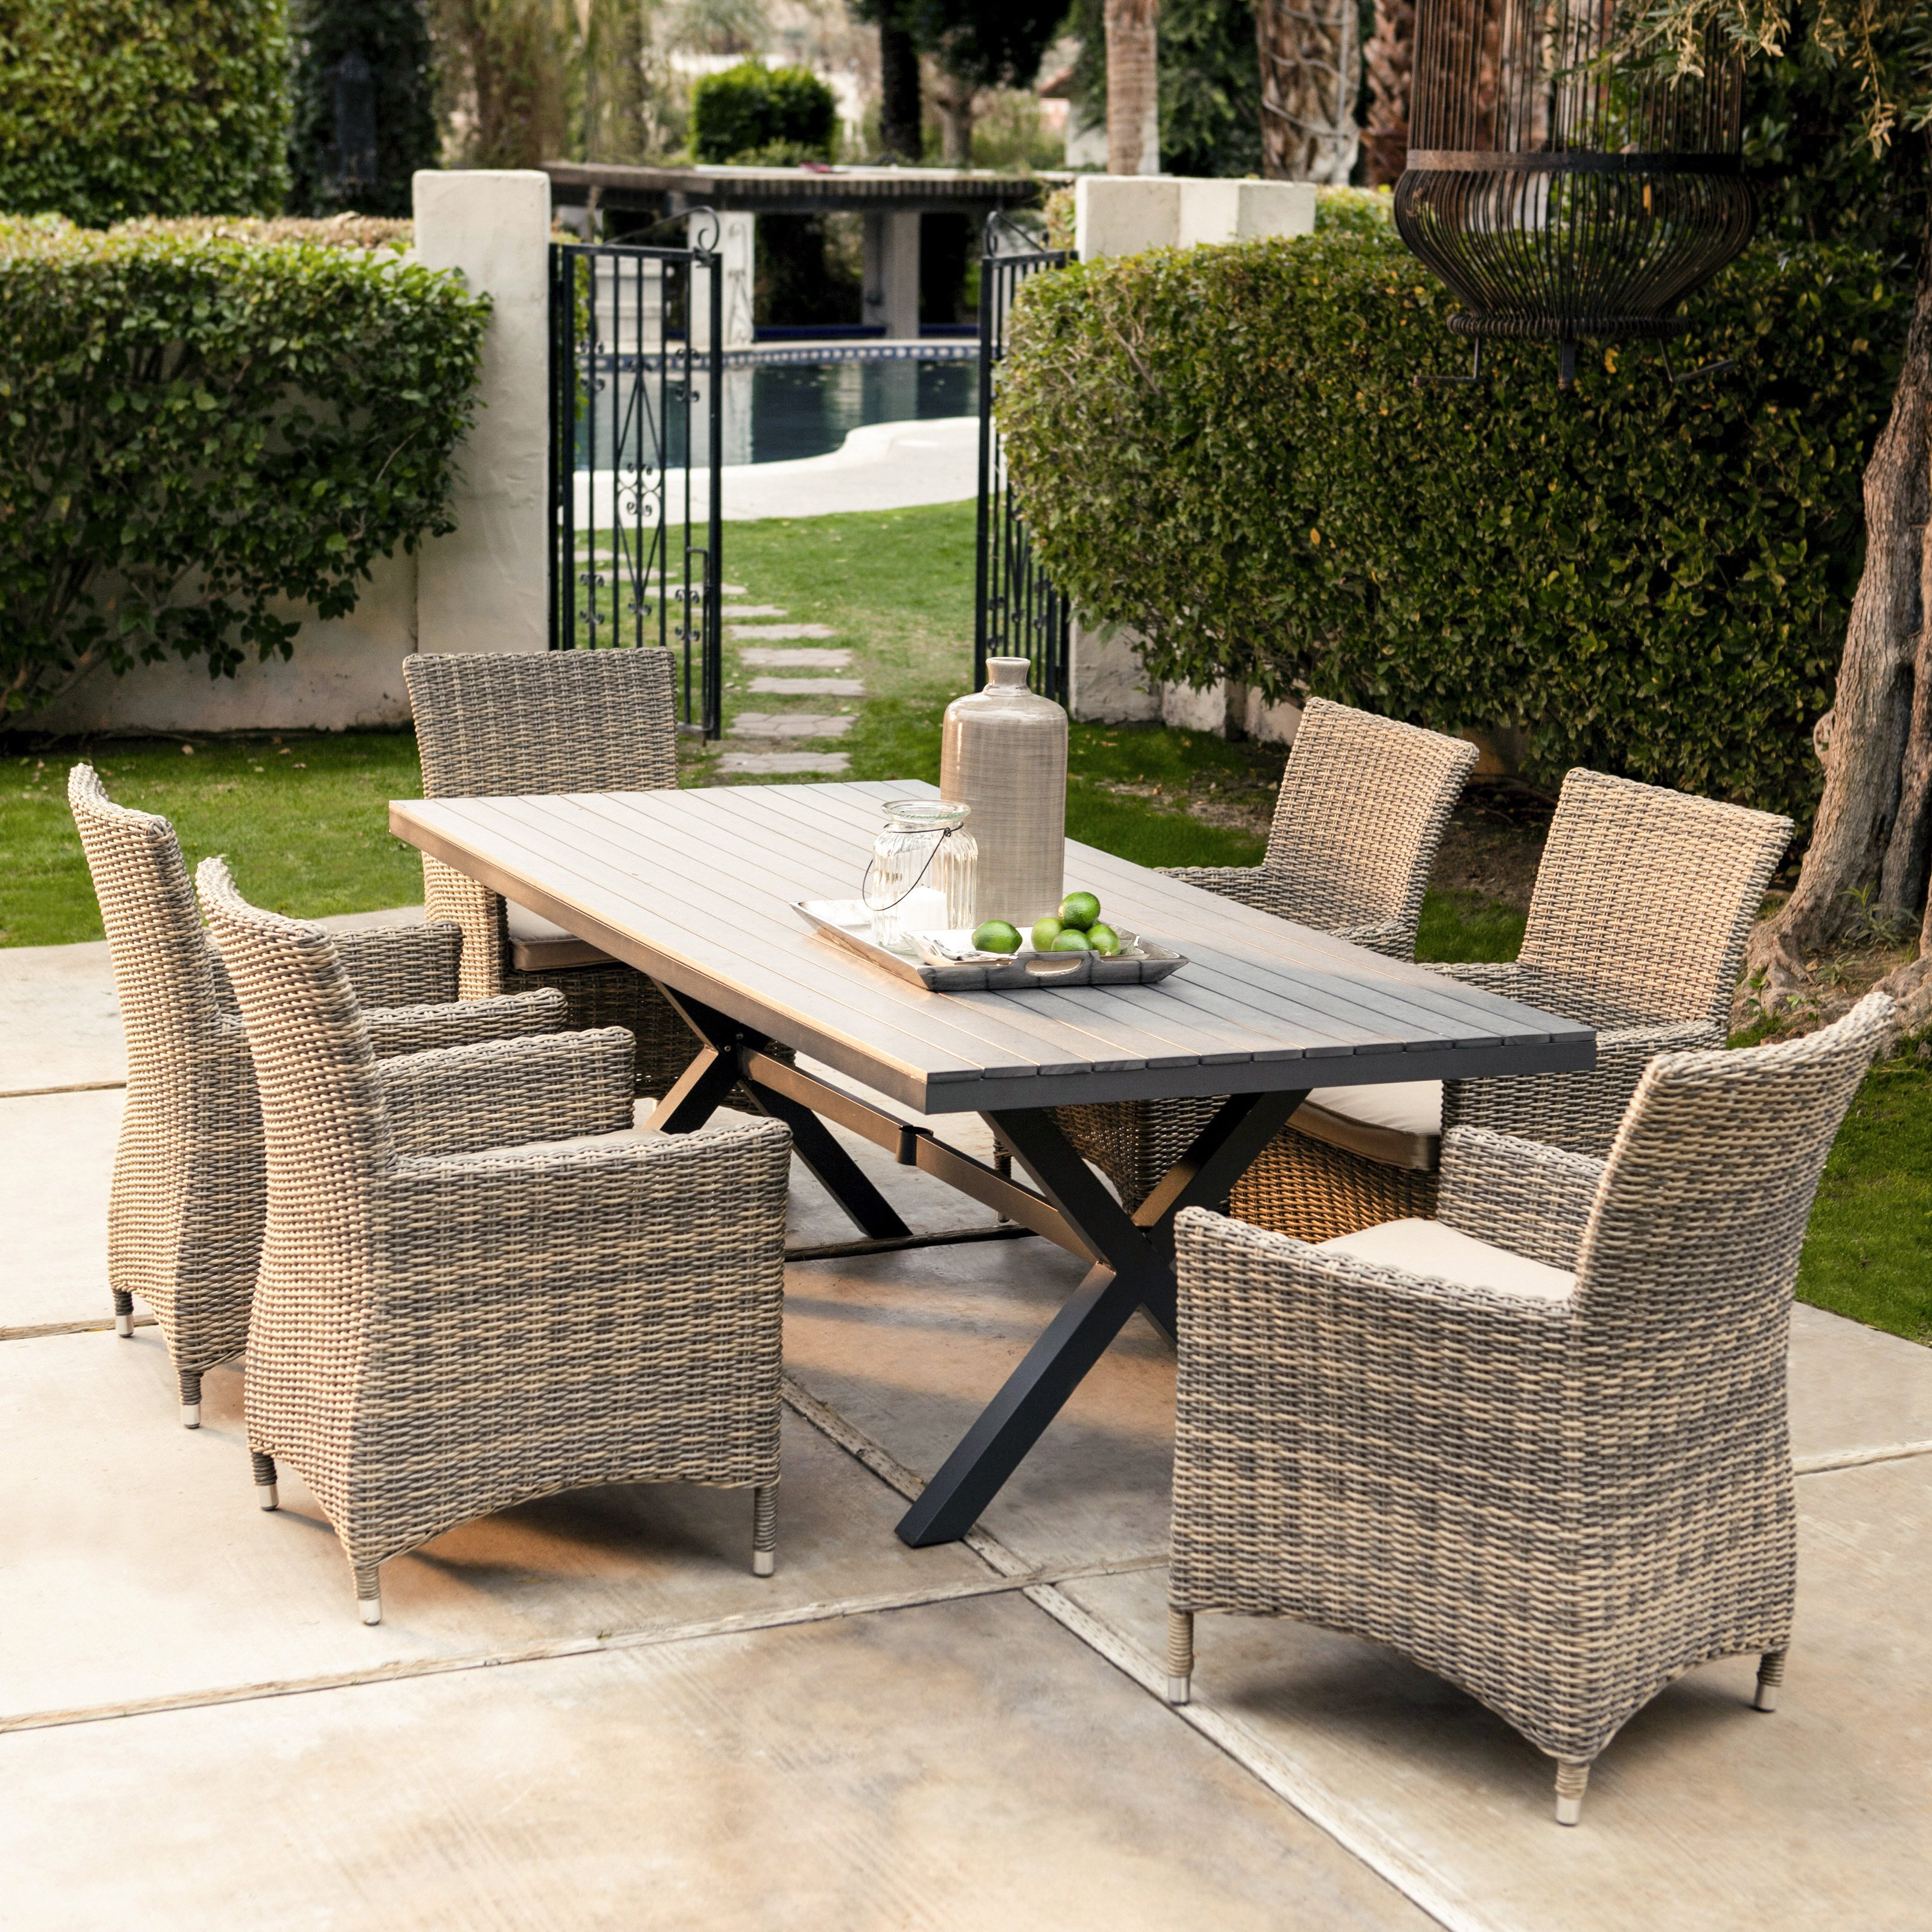 Beautiful Belham Living Devon All Weather Wicker Sofa Sectional Patio Dining Set - outdoor furniture dining sets